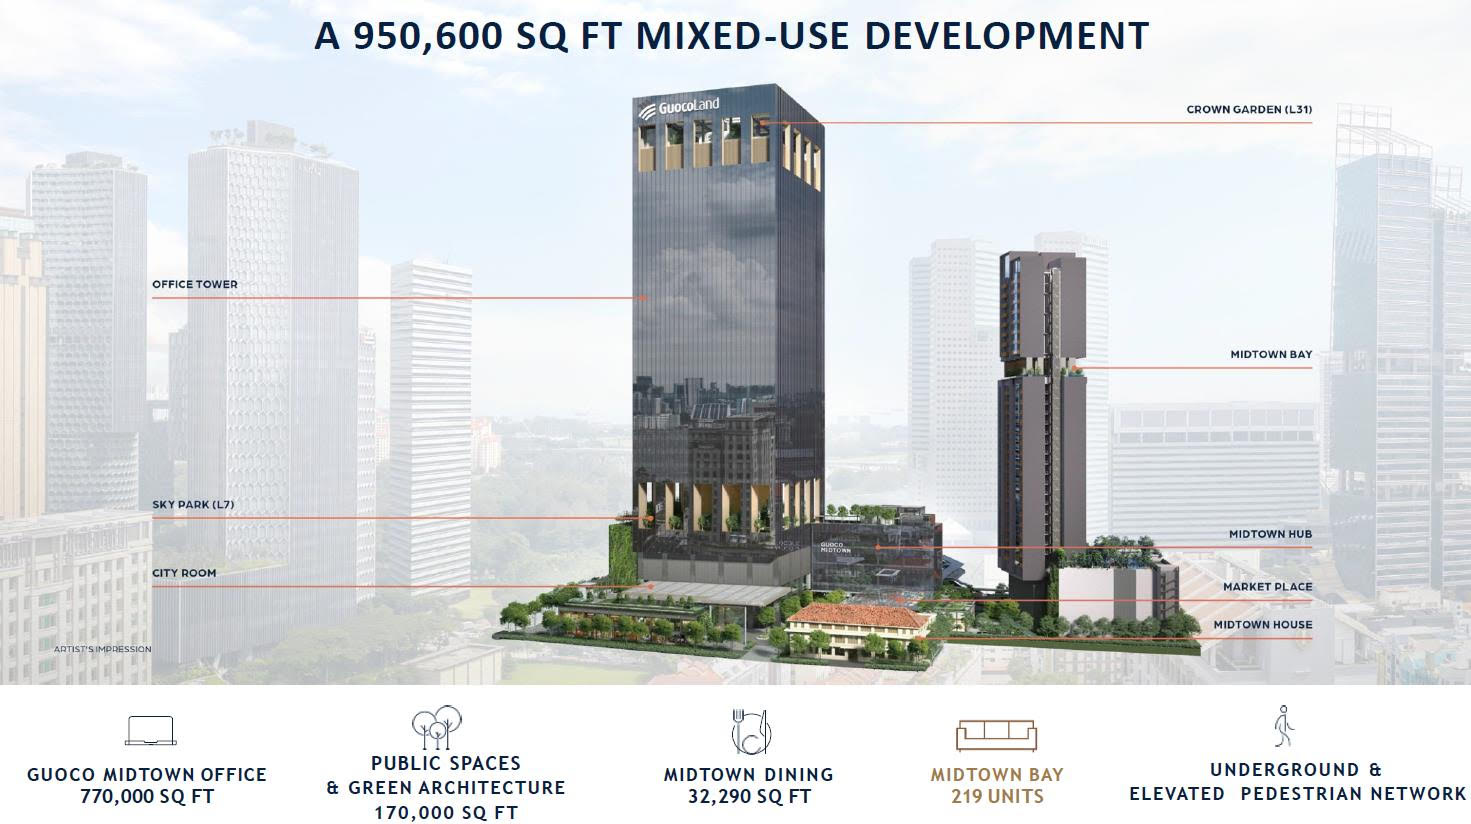 Guoco-Midtown-Bay-condo-mixed development-bugis-mrt-singapore